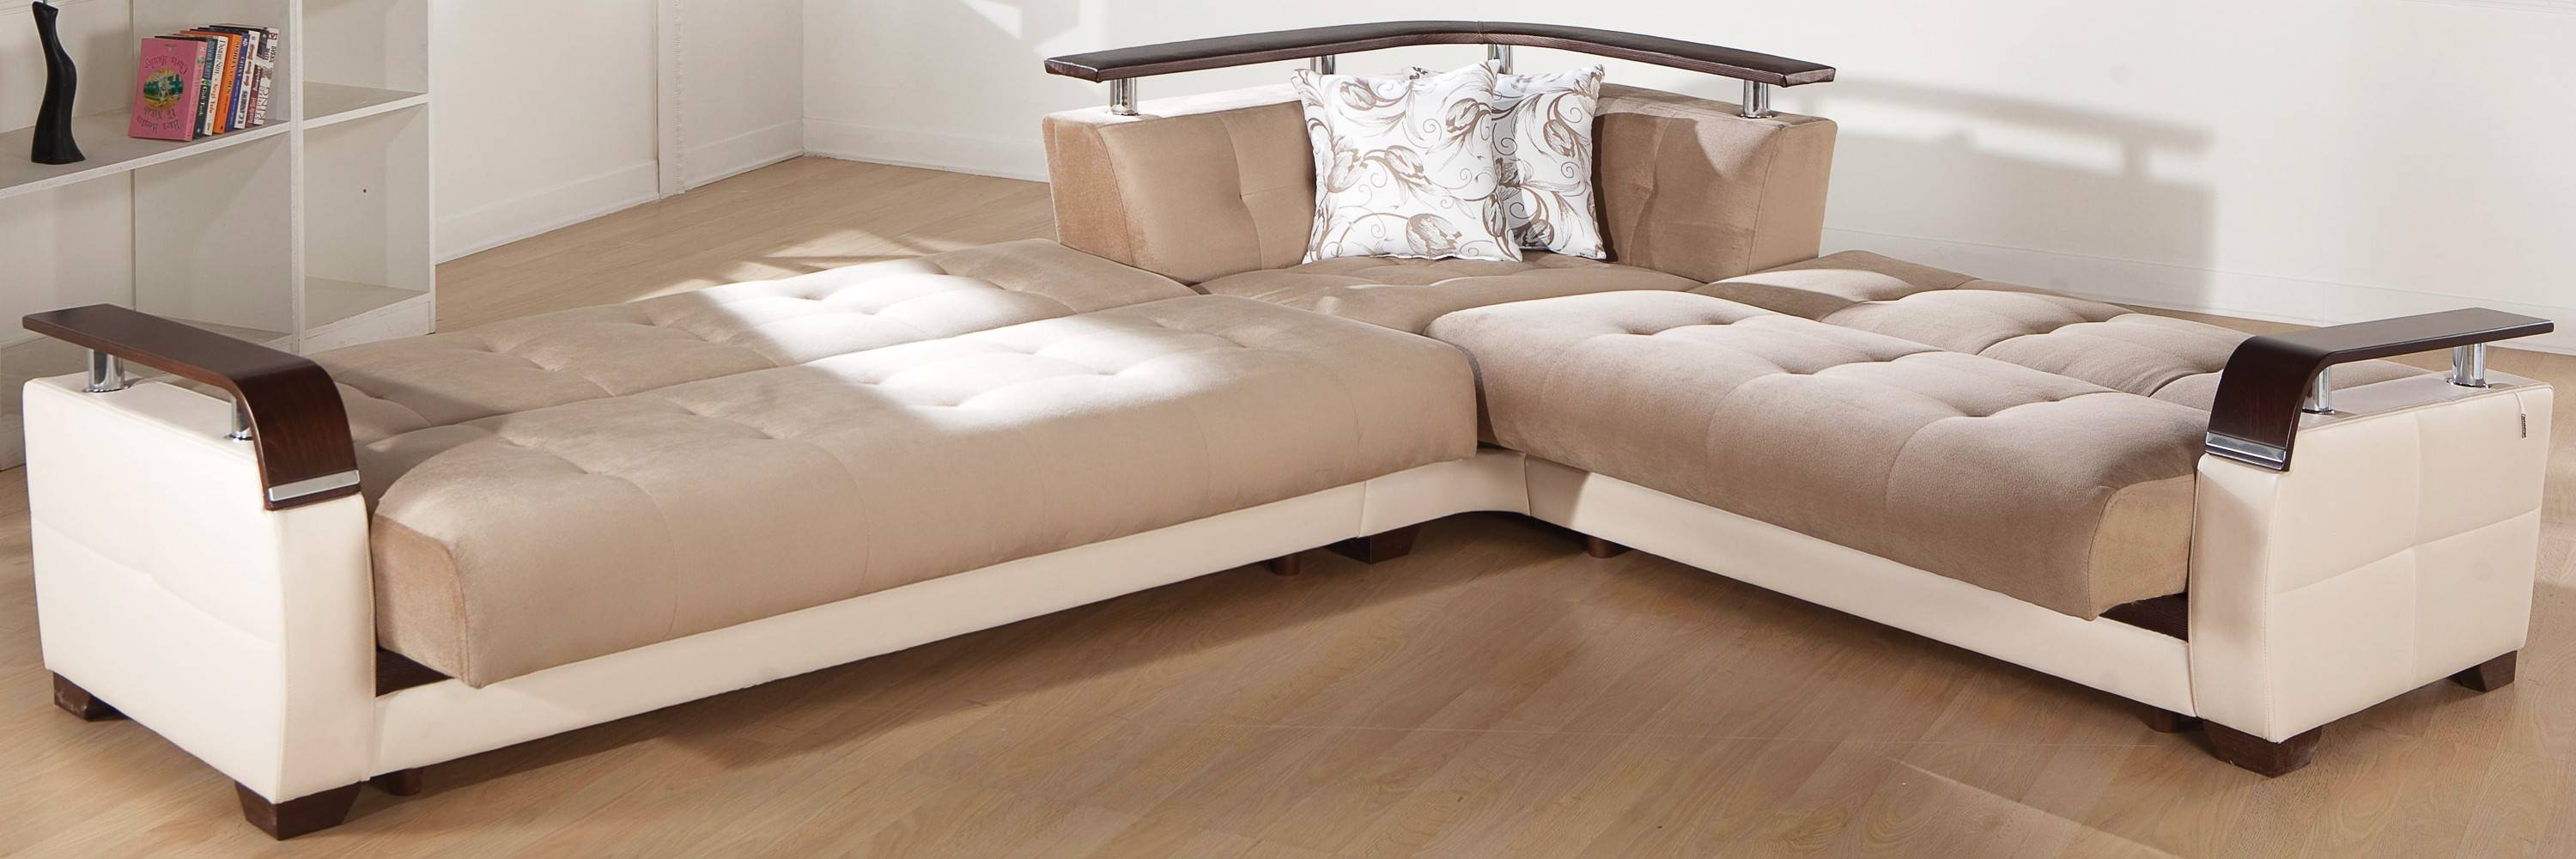 Natural Convertible Sectional Sofa In Naomai Light Brown with Convertible Sectional Sofas (Image 19 of 30)